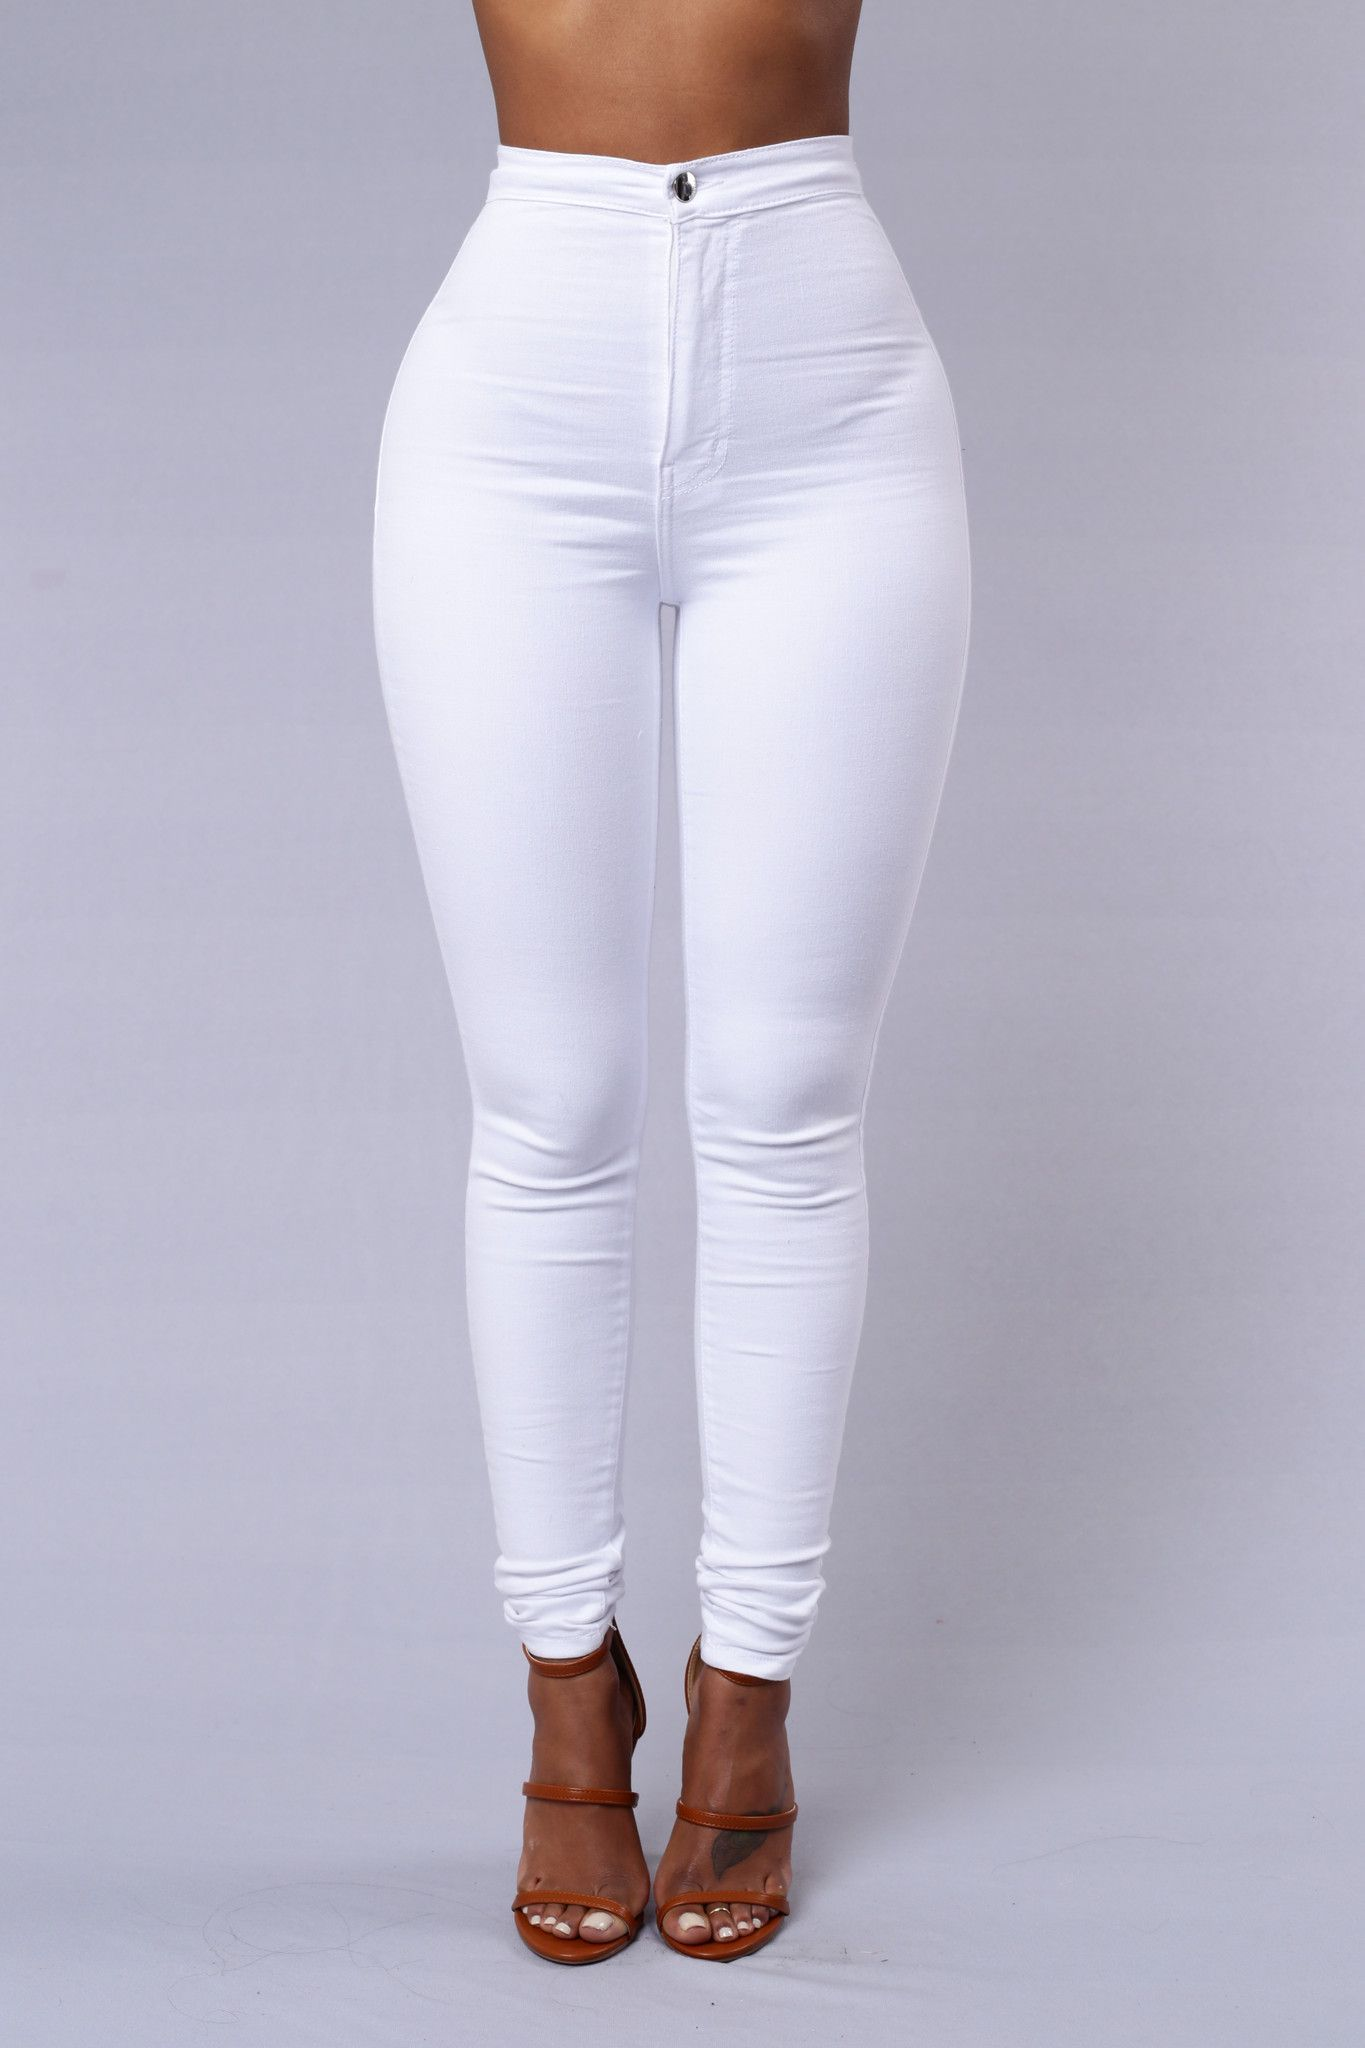 Super High Waisted - Round Pocket - Skinny Leg - Great Stretch and Quality  - Made in USA - 97% Cotton 3% Spandex fad15d48b